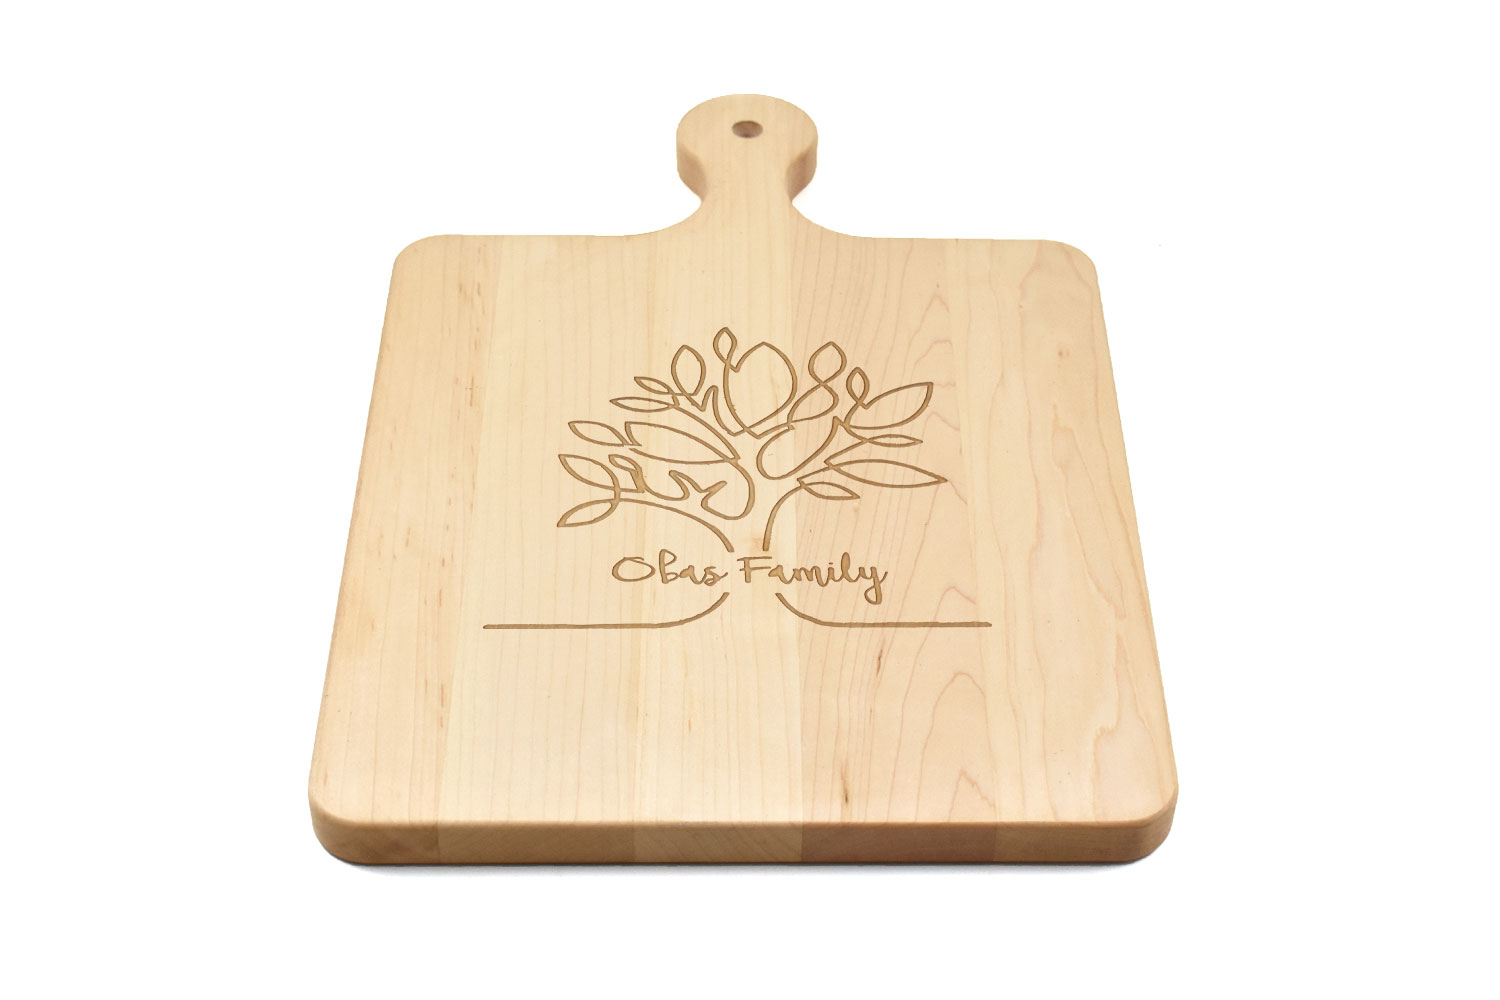 Maple Wood Cutting Board with Rounded Handle, Custom Engraved, Chopping Board, Presentation Board, Made in Canada